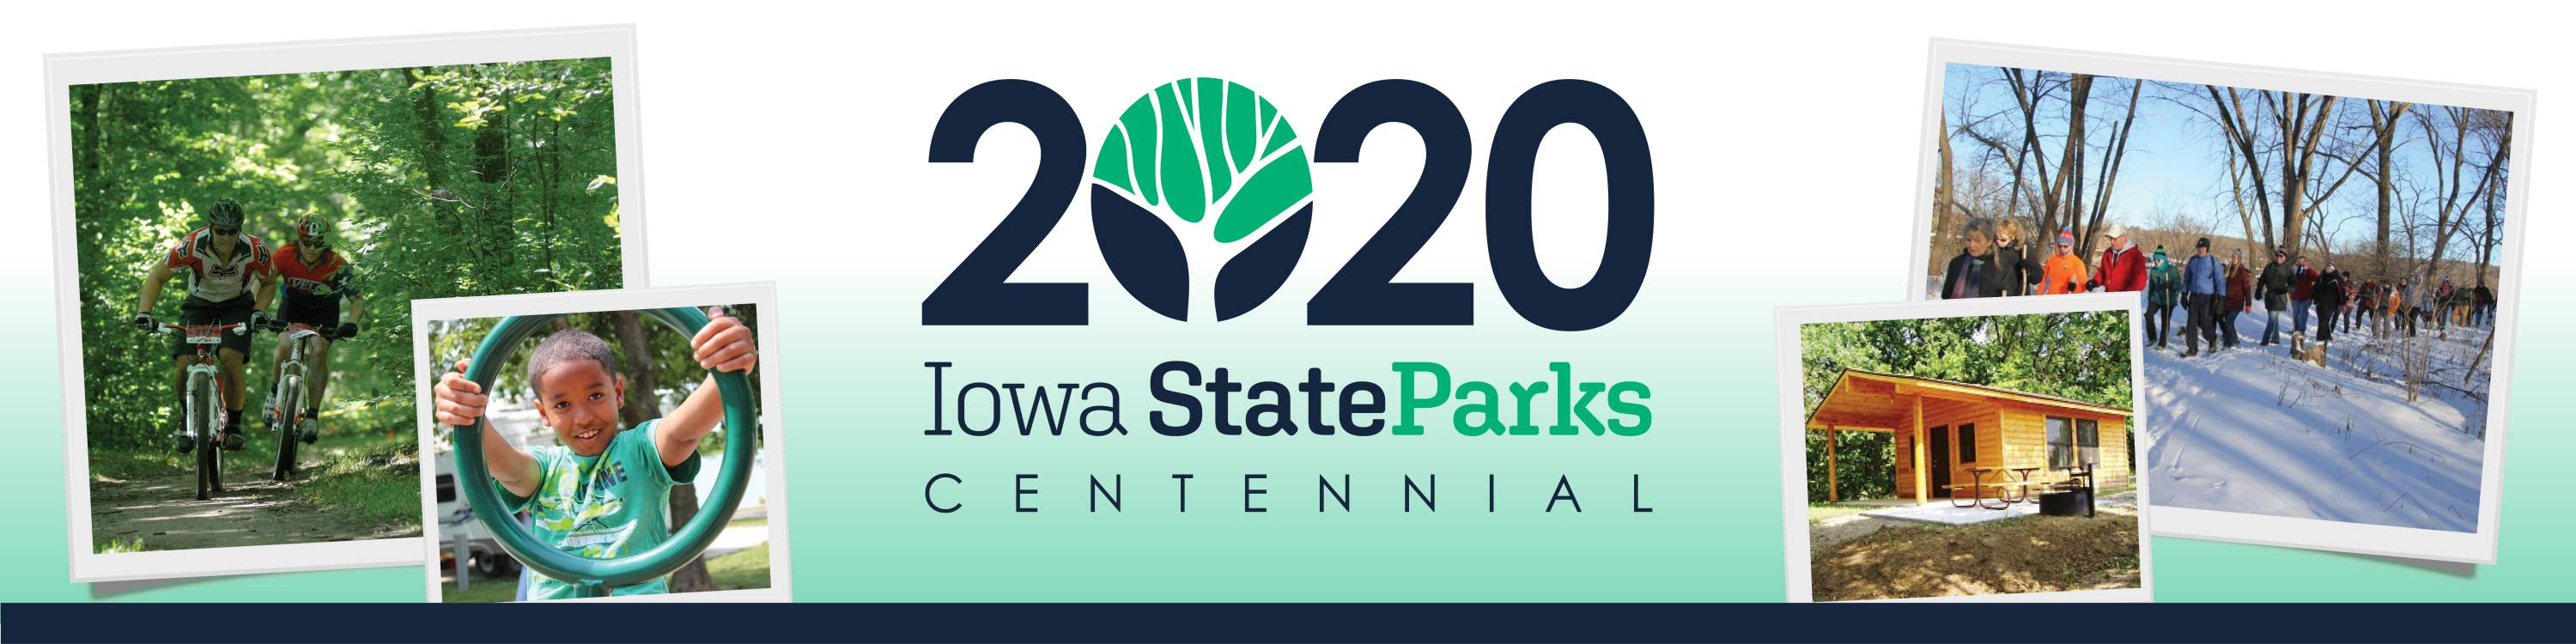 Iowa State Parks Centennial 2020, celebrating iowa state parks 100th anniversary with first day hikes, backbone centennial and more